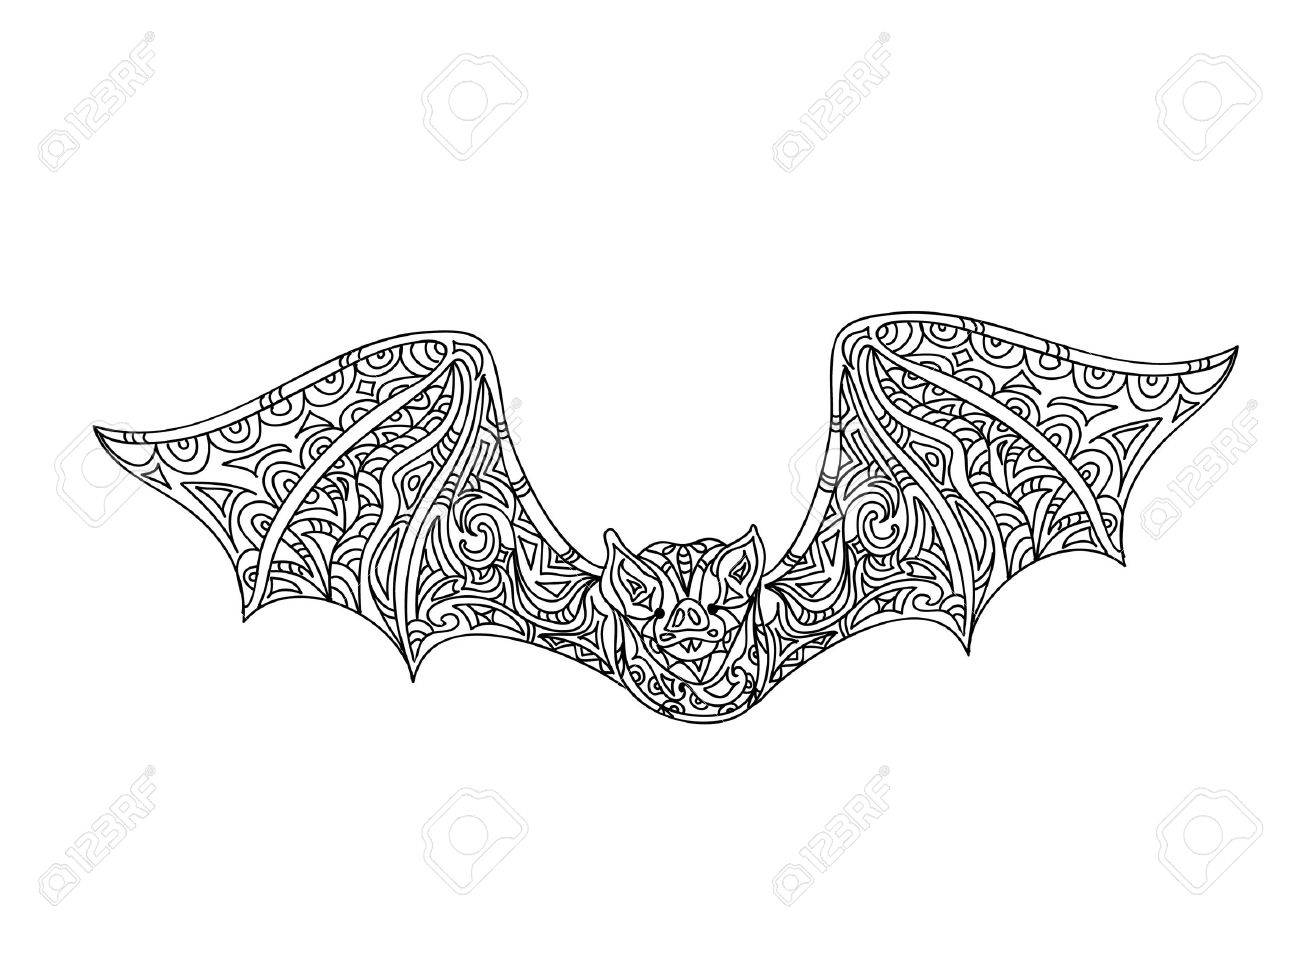 Bat Coloring Page Royalty Free Cliparts, Vectors, And Stock ...